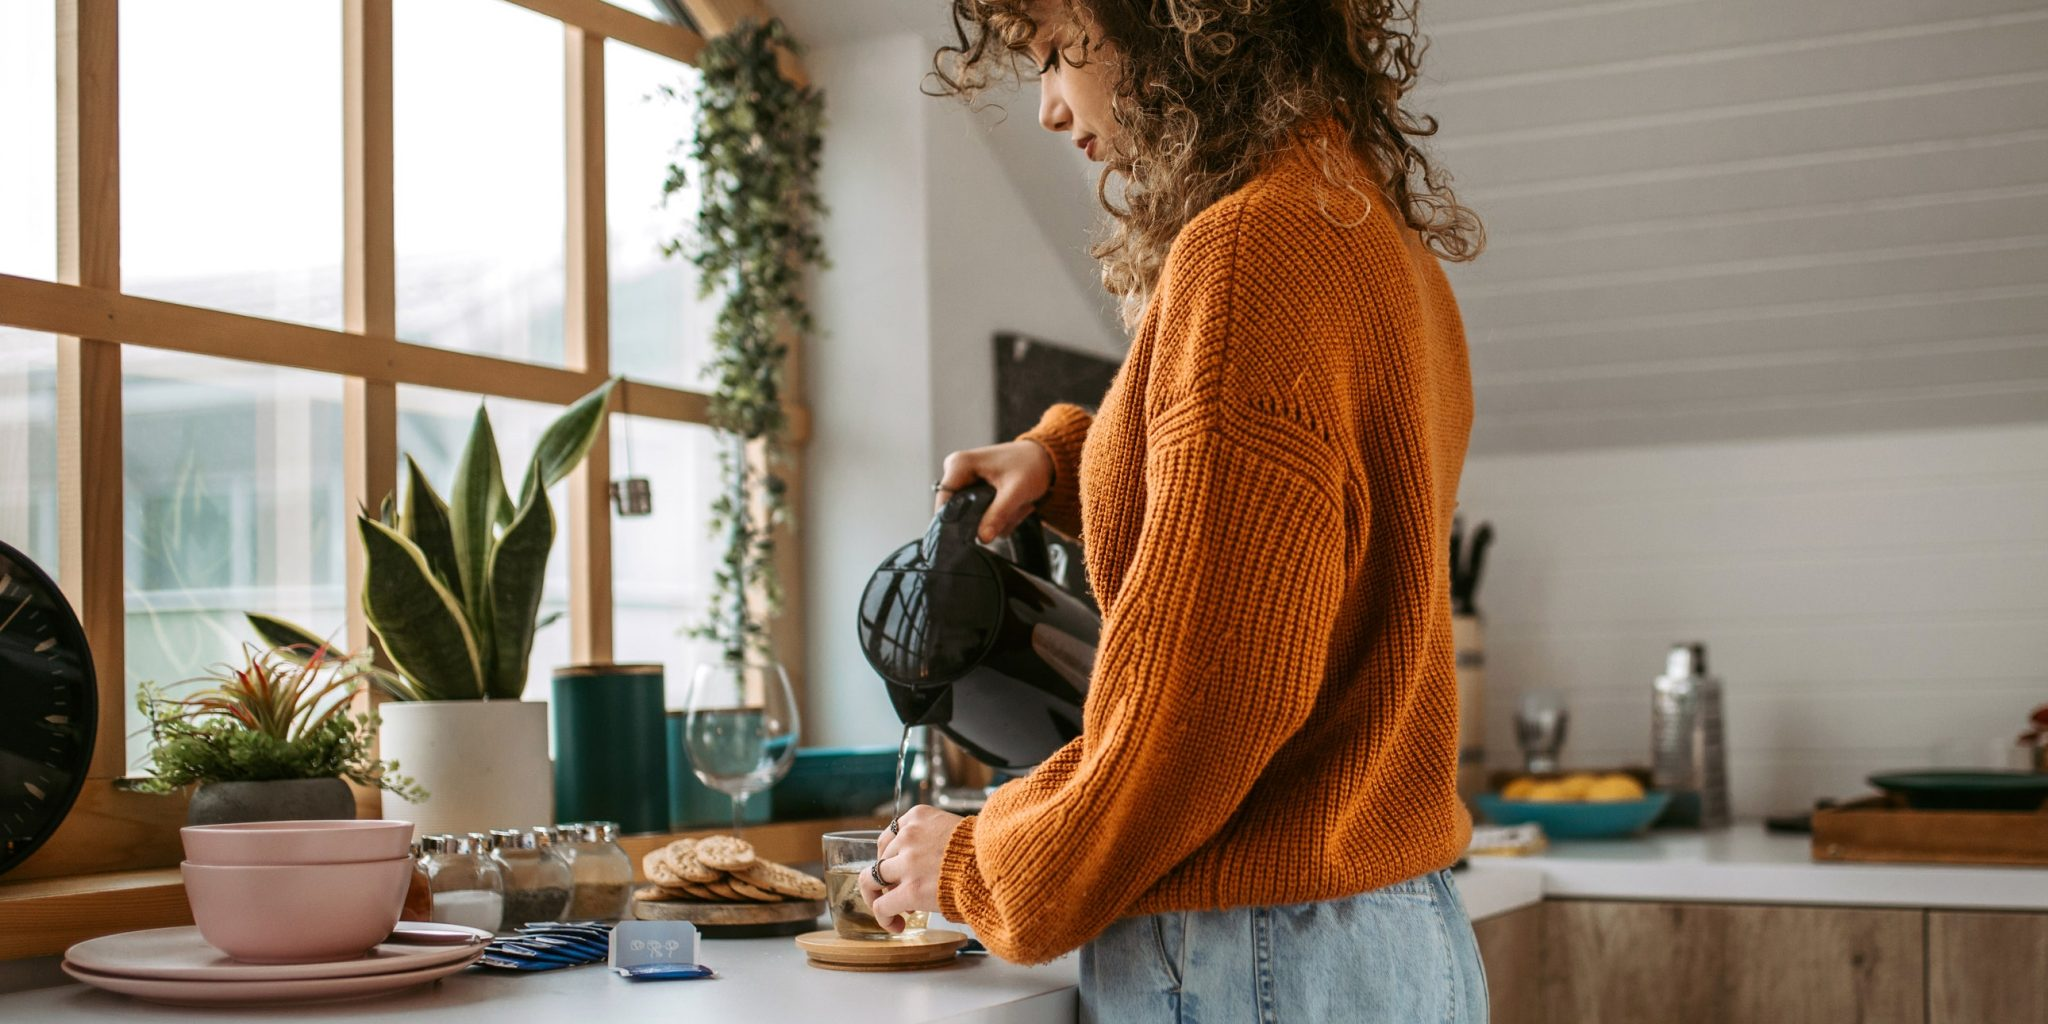 29 Best Kitchen and Home Deals at Nordstrom's Anniversary Sale 2021